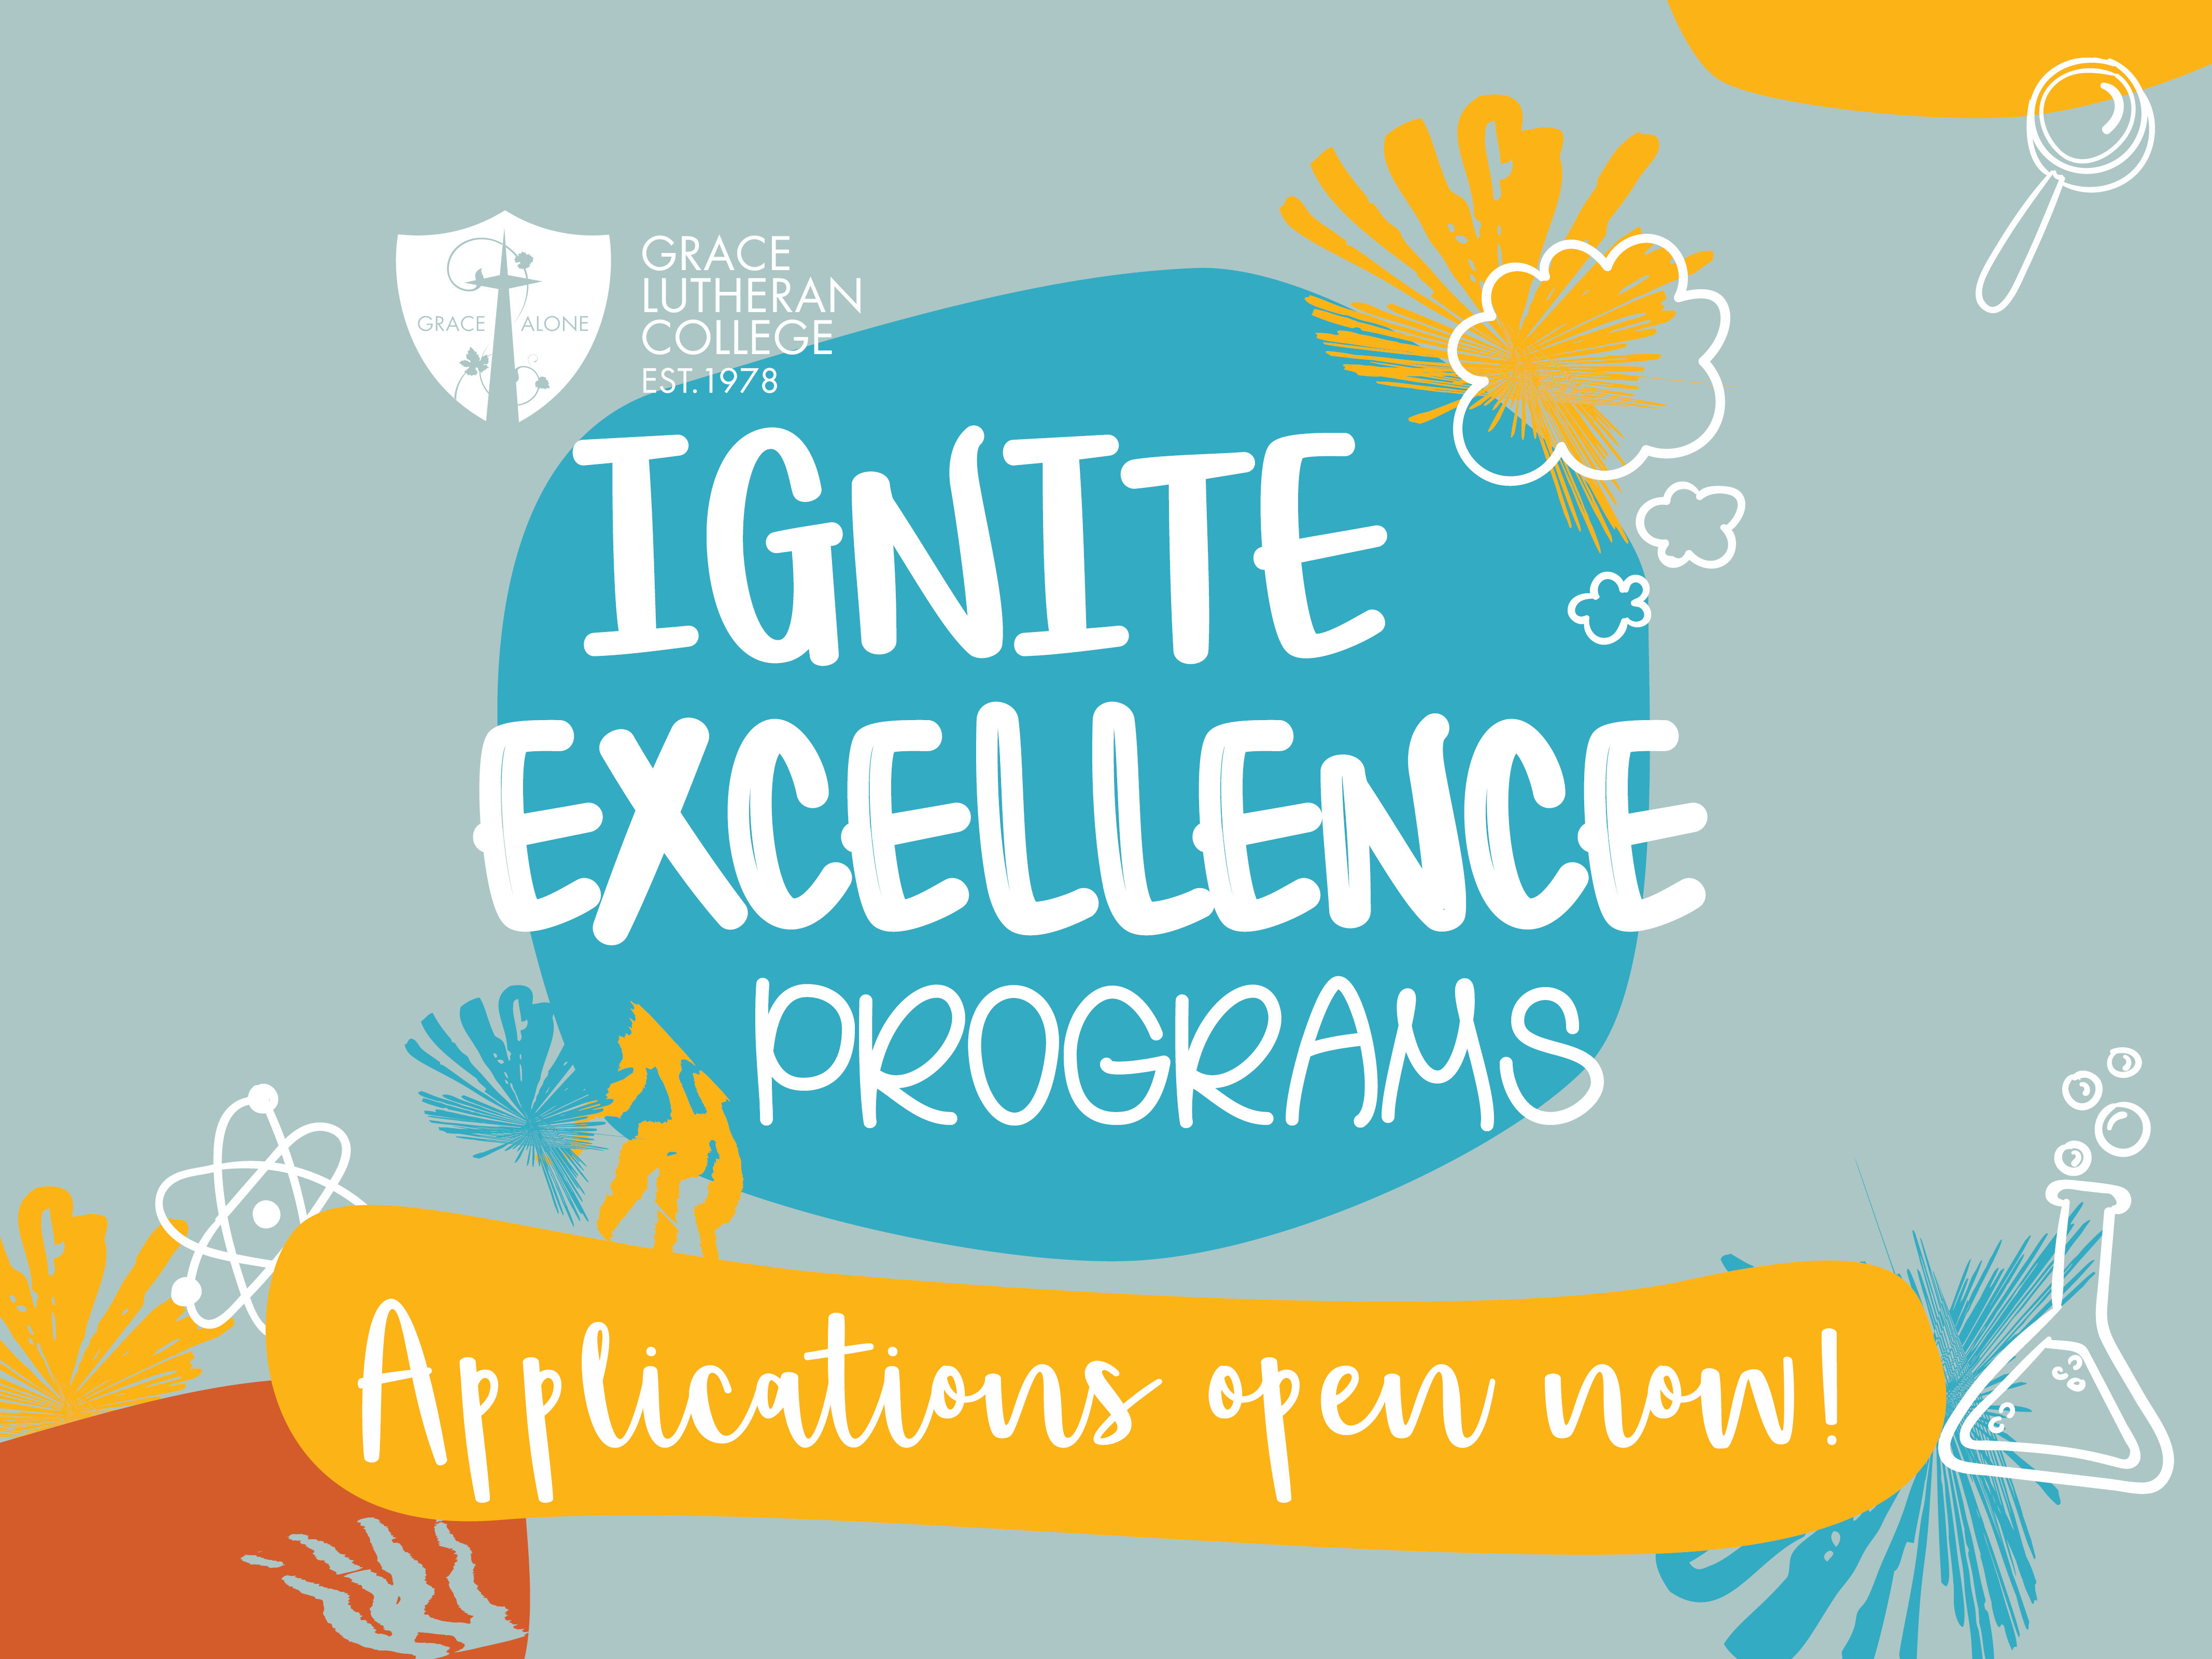 Ignite Excellence Programs and Opportunities - Rothwell